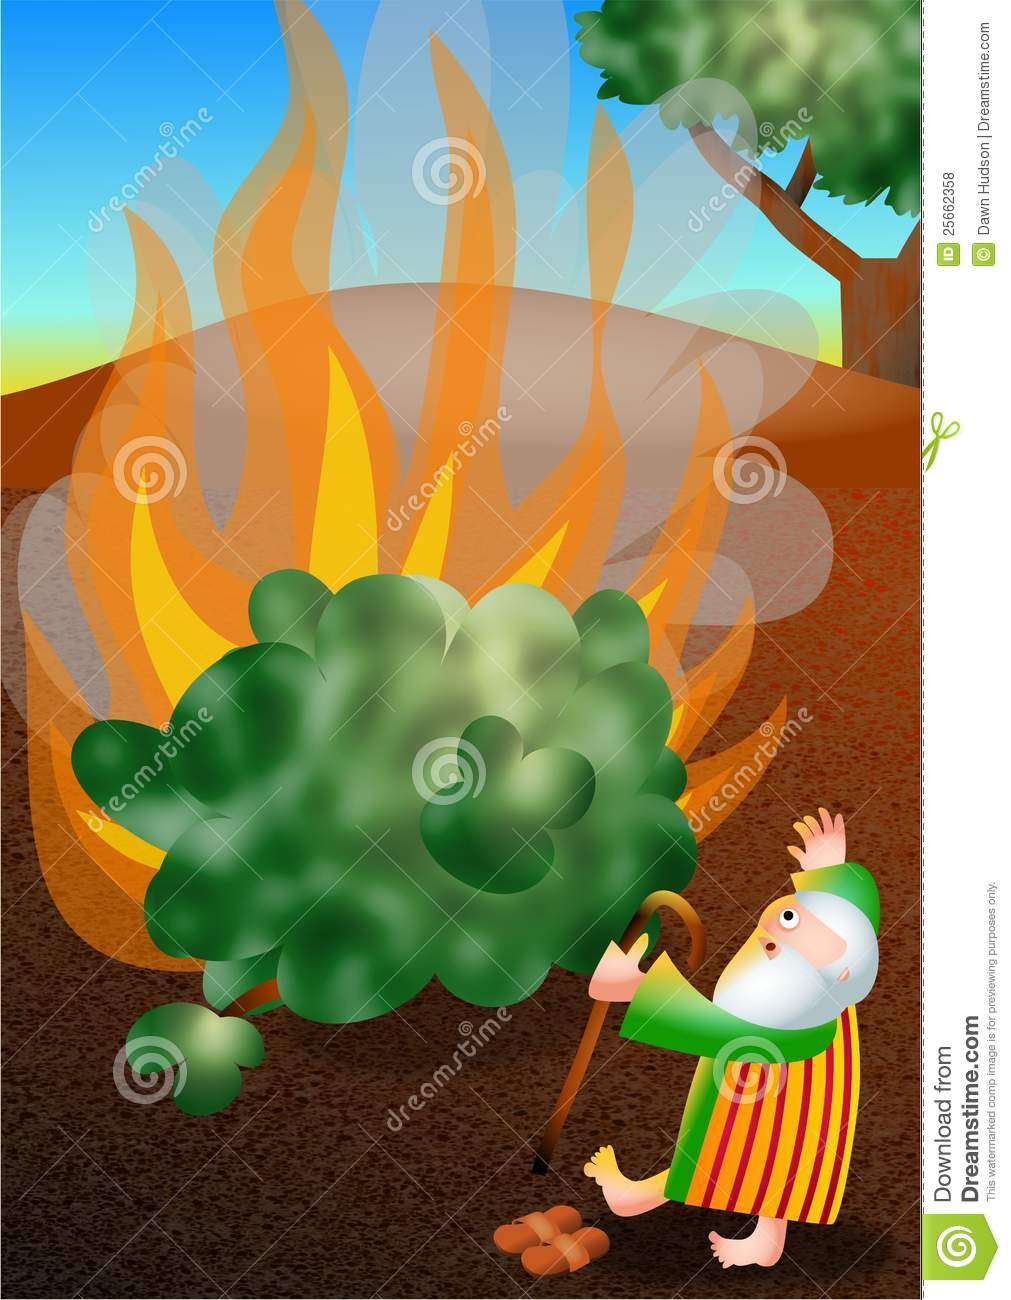 Moses And The Burning Bush Royalty Free Stock Photos - Image: 25662358